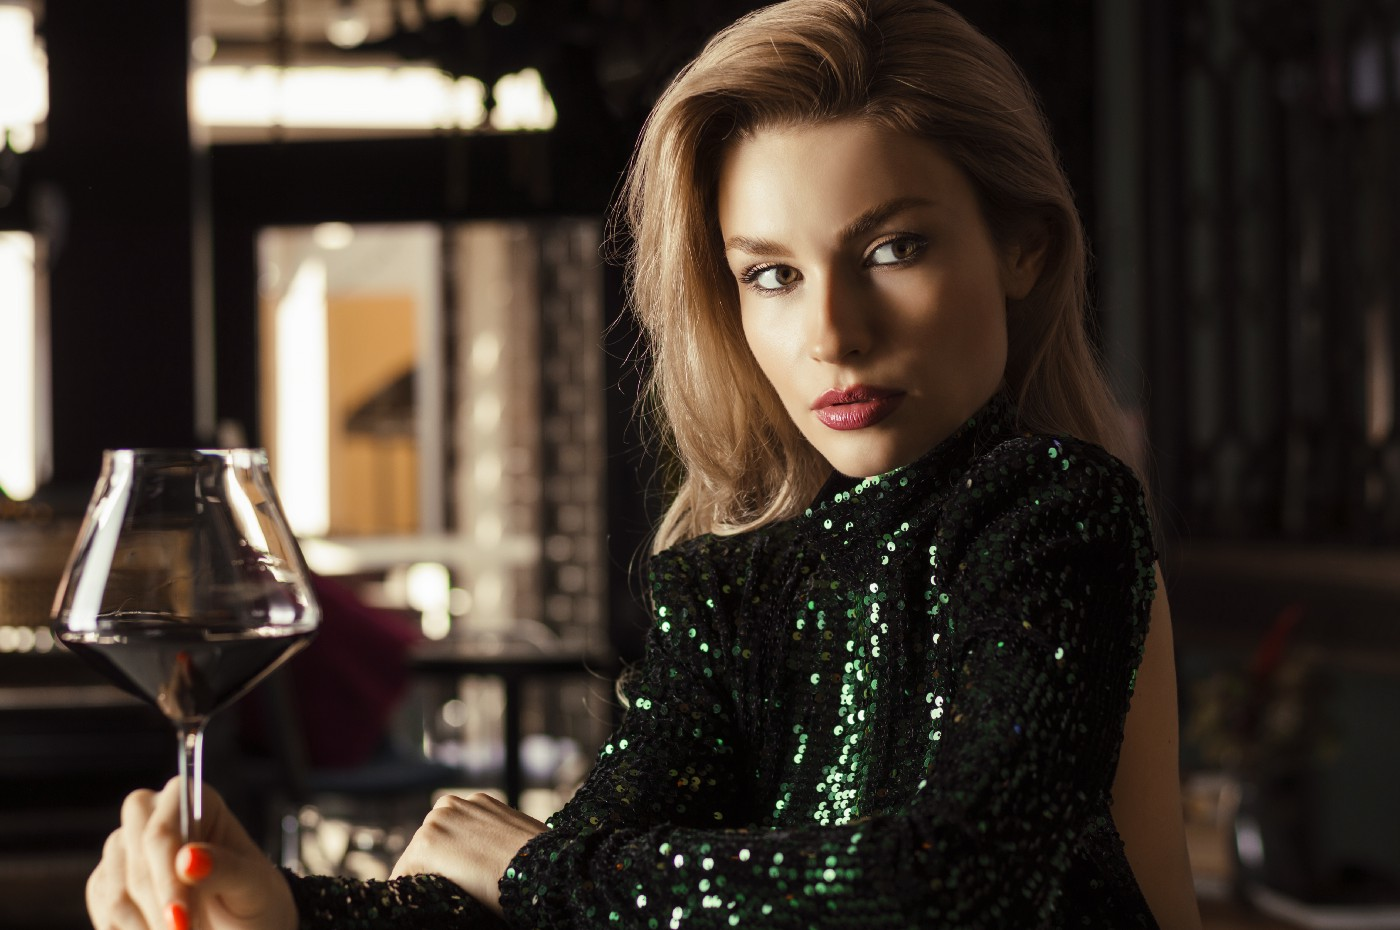 Attractive woman staring seductively while holding a glass of wine.